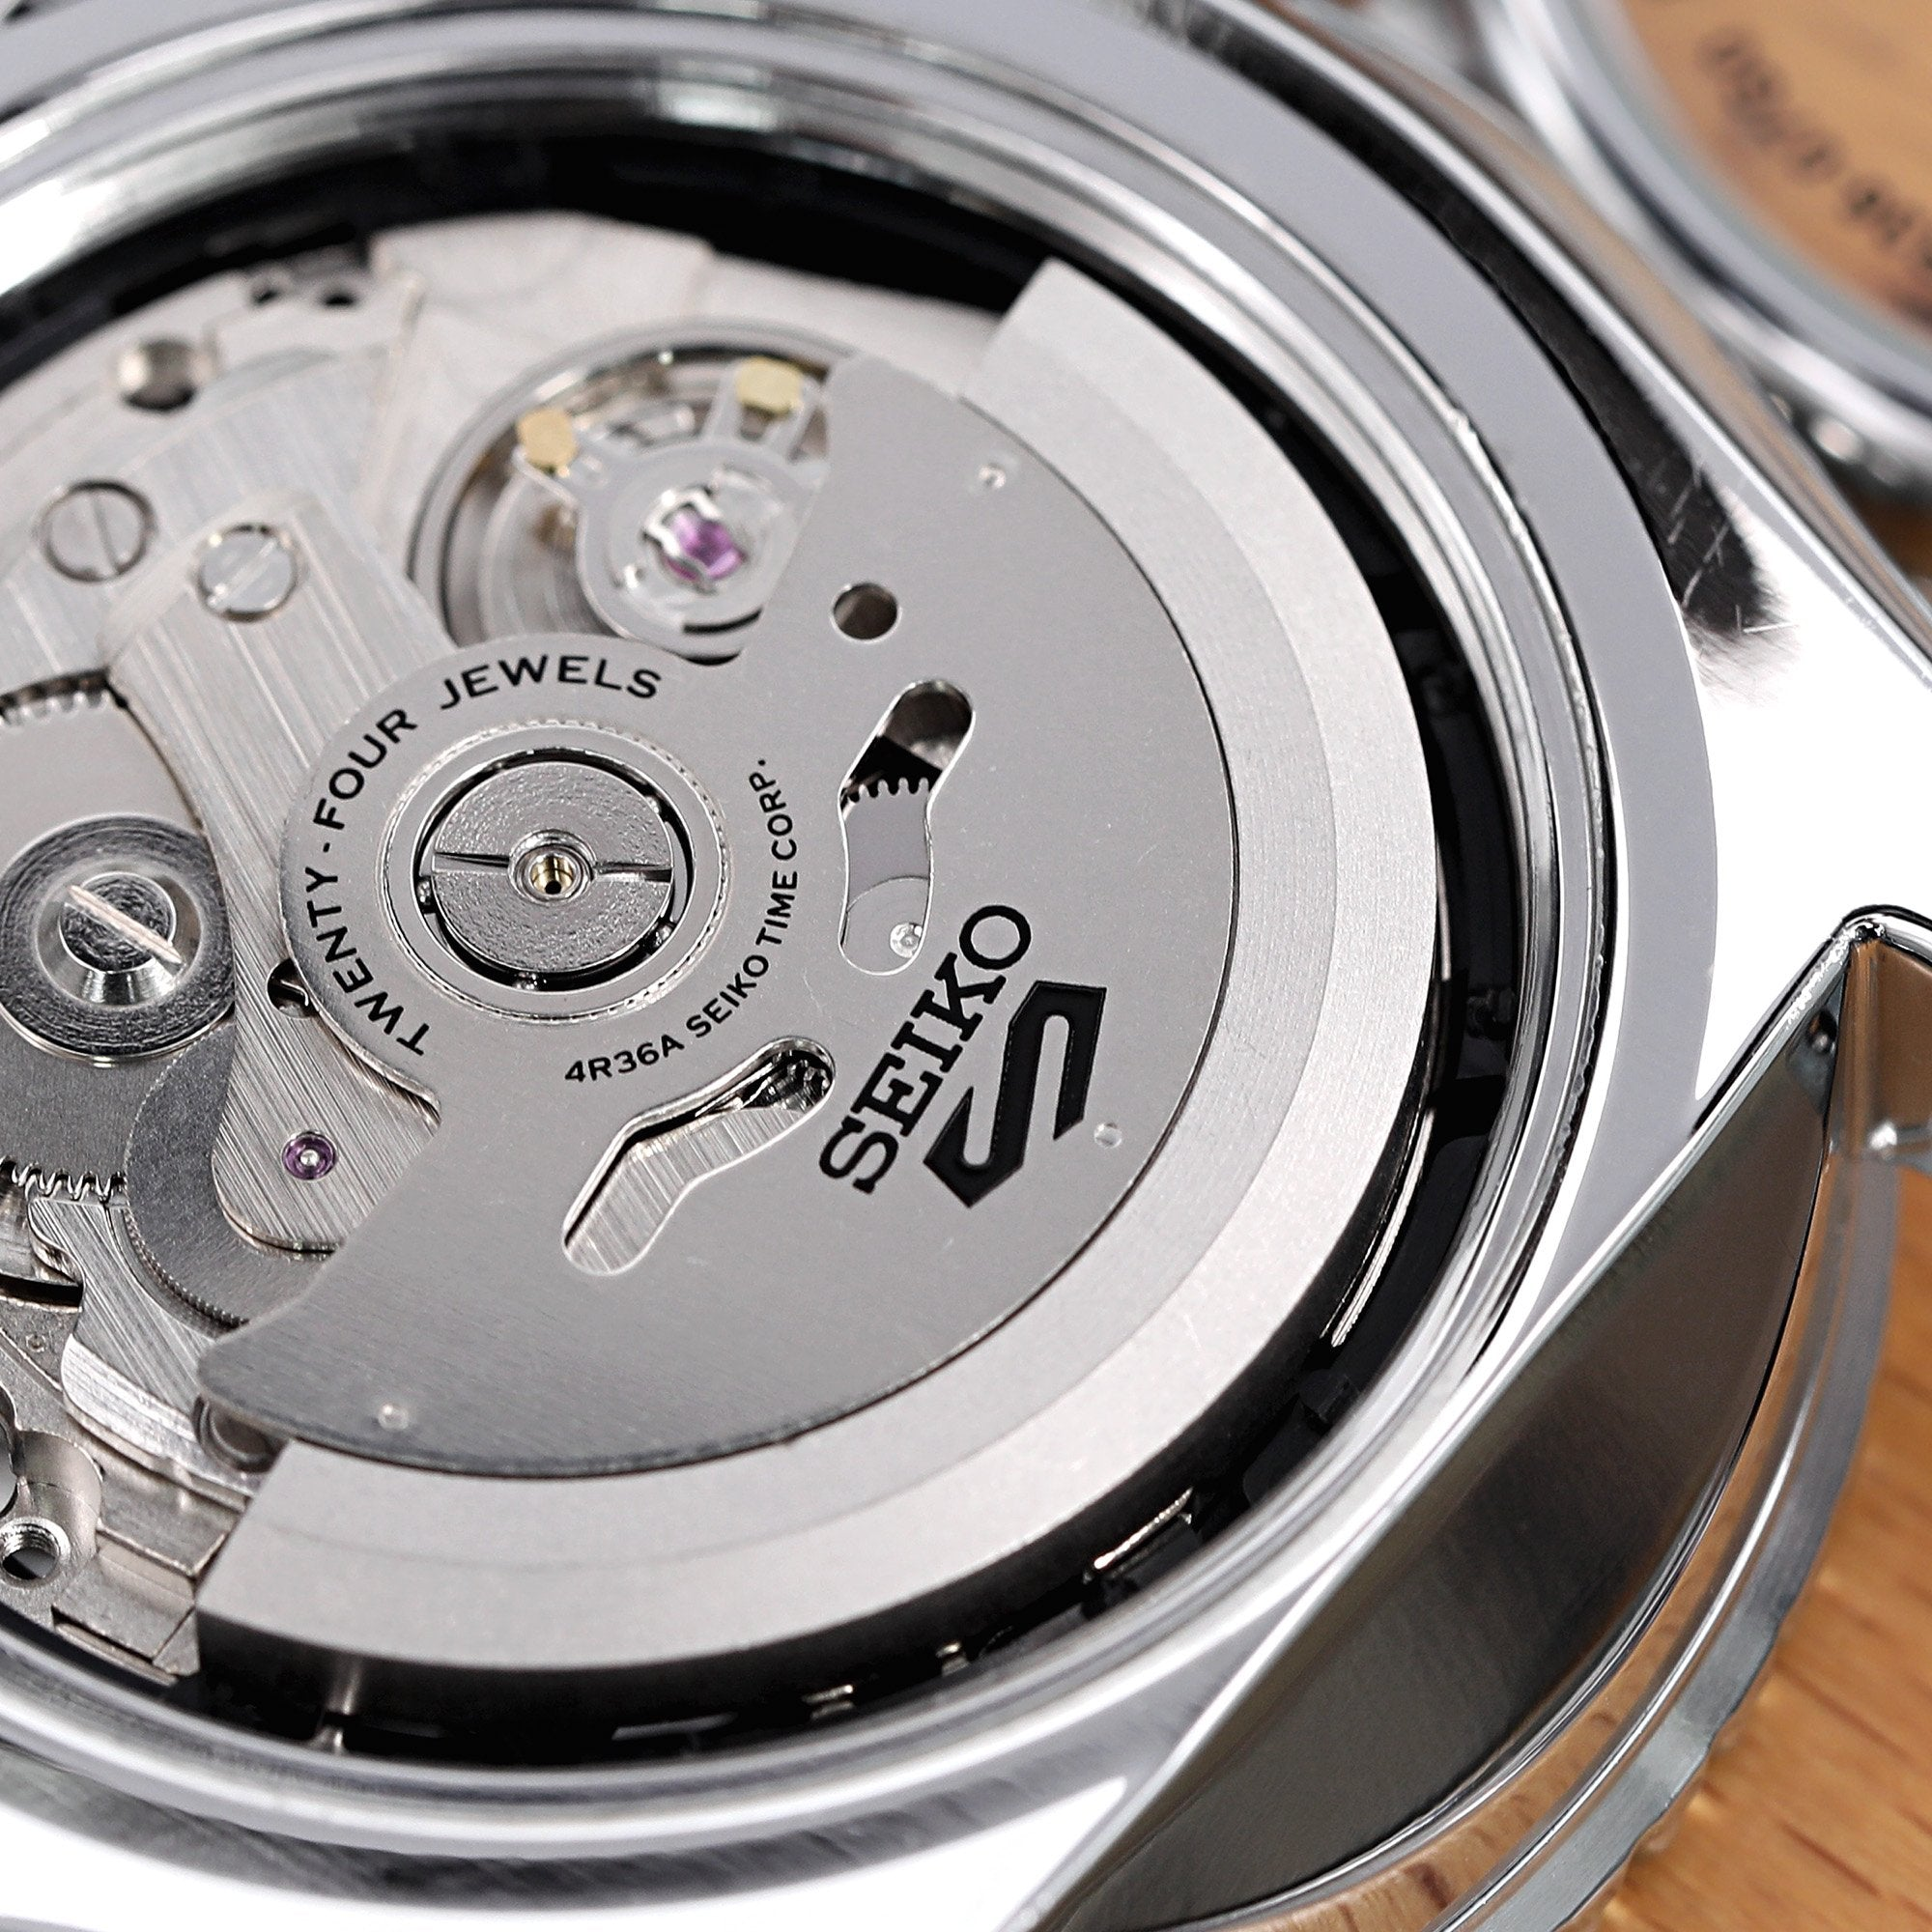 What is Seiko caliber 4R36?